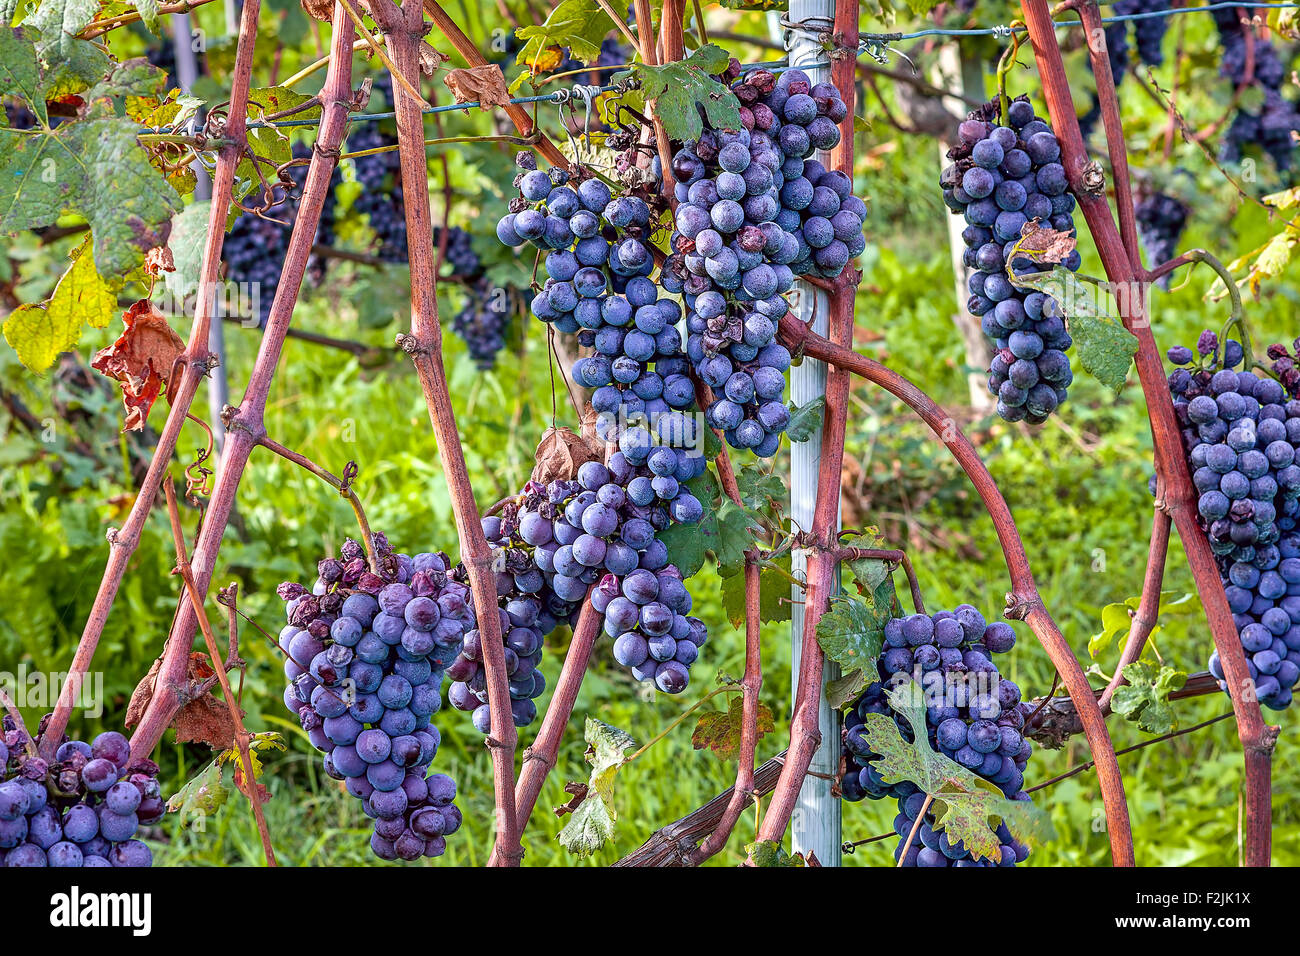 Bunches of ripe grapes on vineyards of Piedmont, Northern Italy. - Stock Image